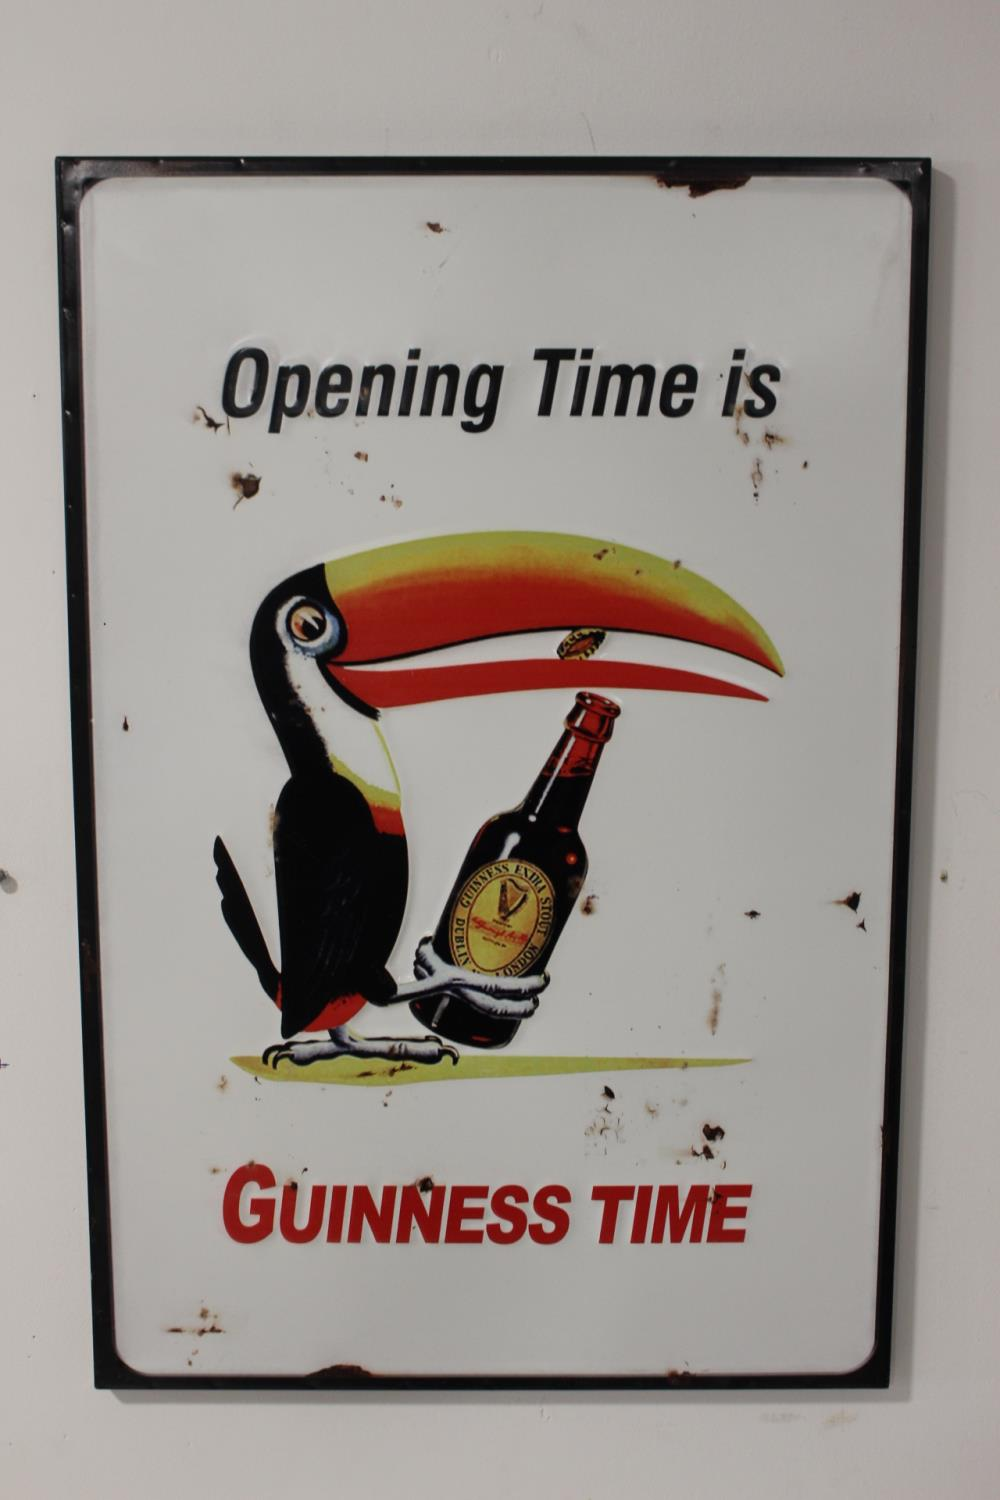 Opening time is Guinness time